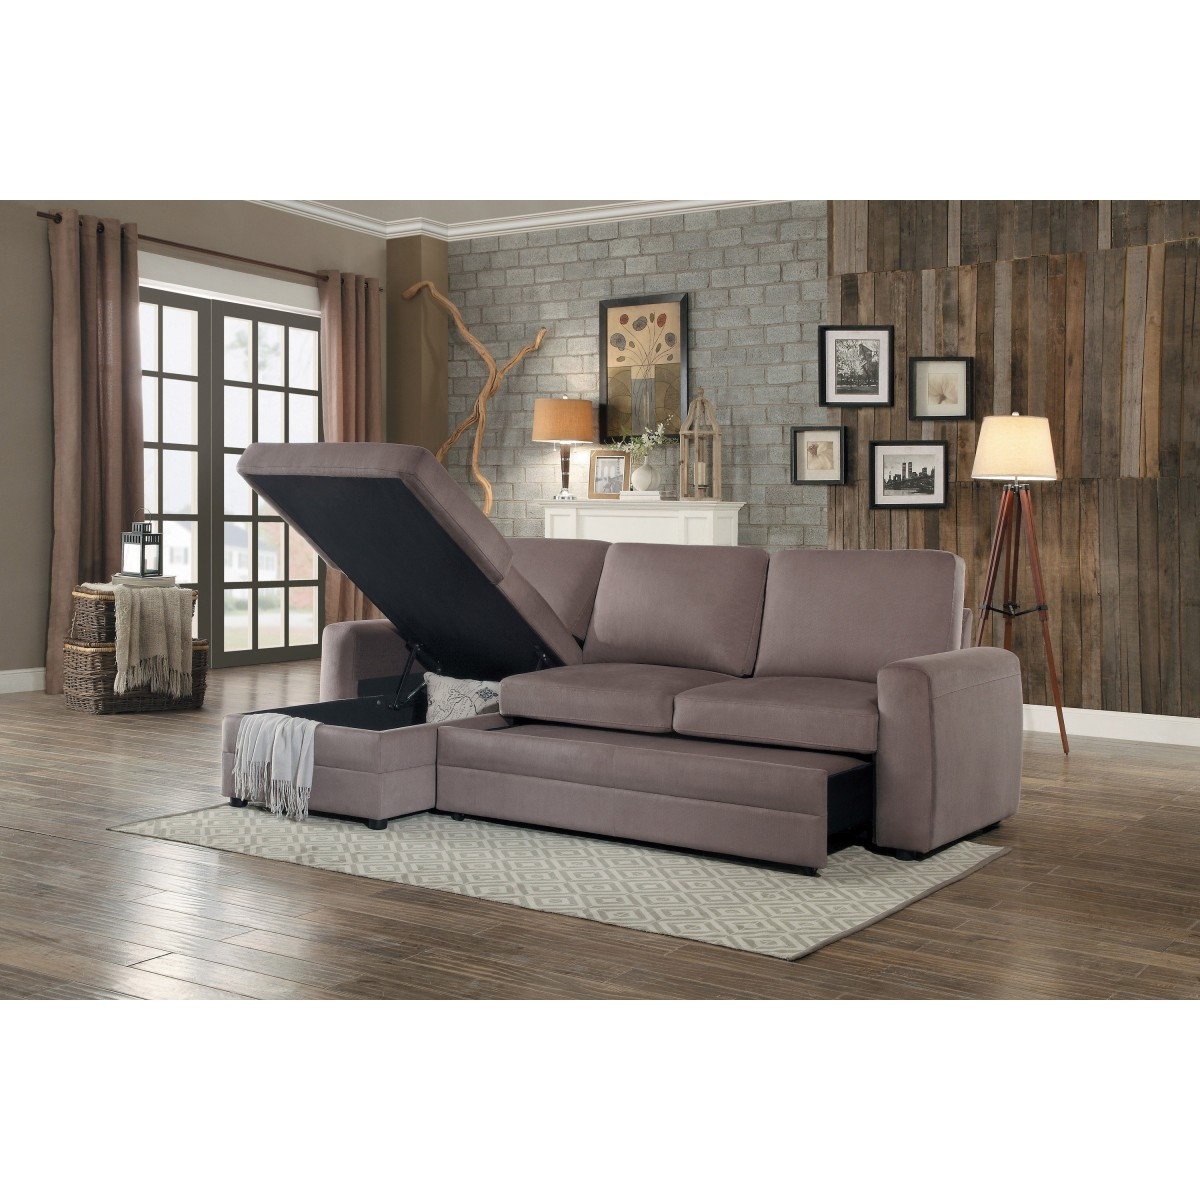 8211 2 Piece Reversible Sectional With Pull Out Bed And